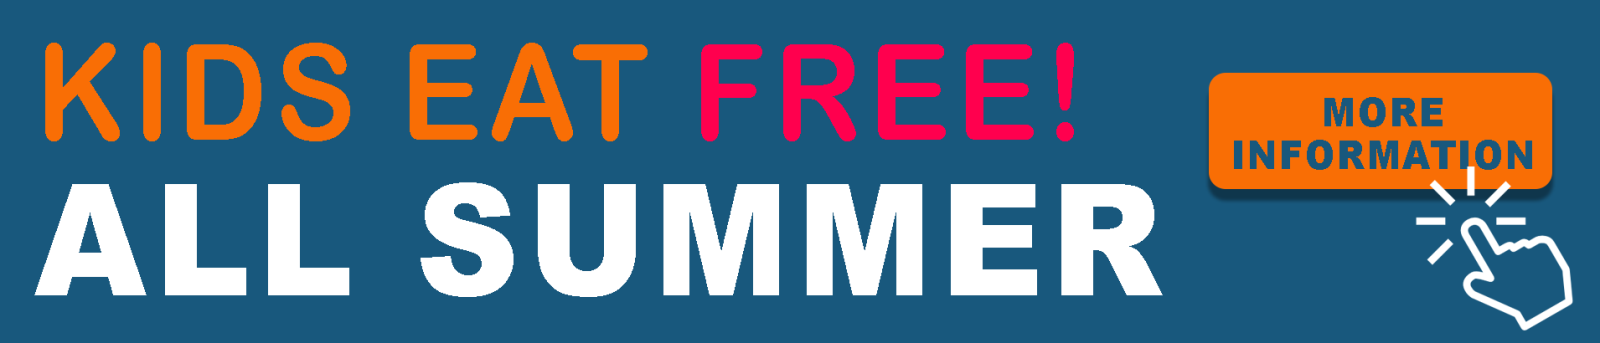 KIDS EAT FREE ALL SUMMER, MORE INFORMATION. (POINTER ICON)